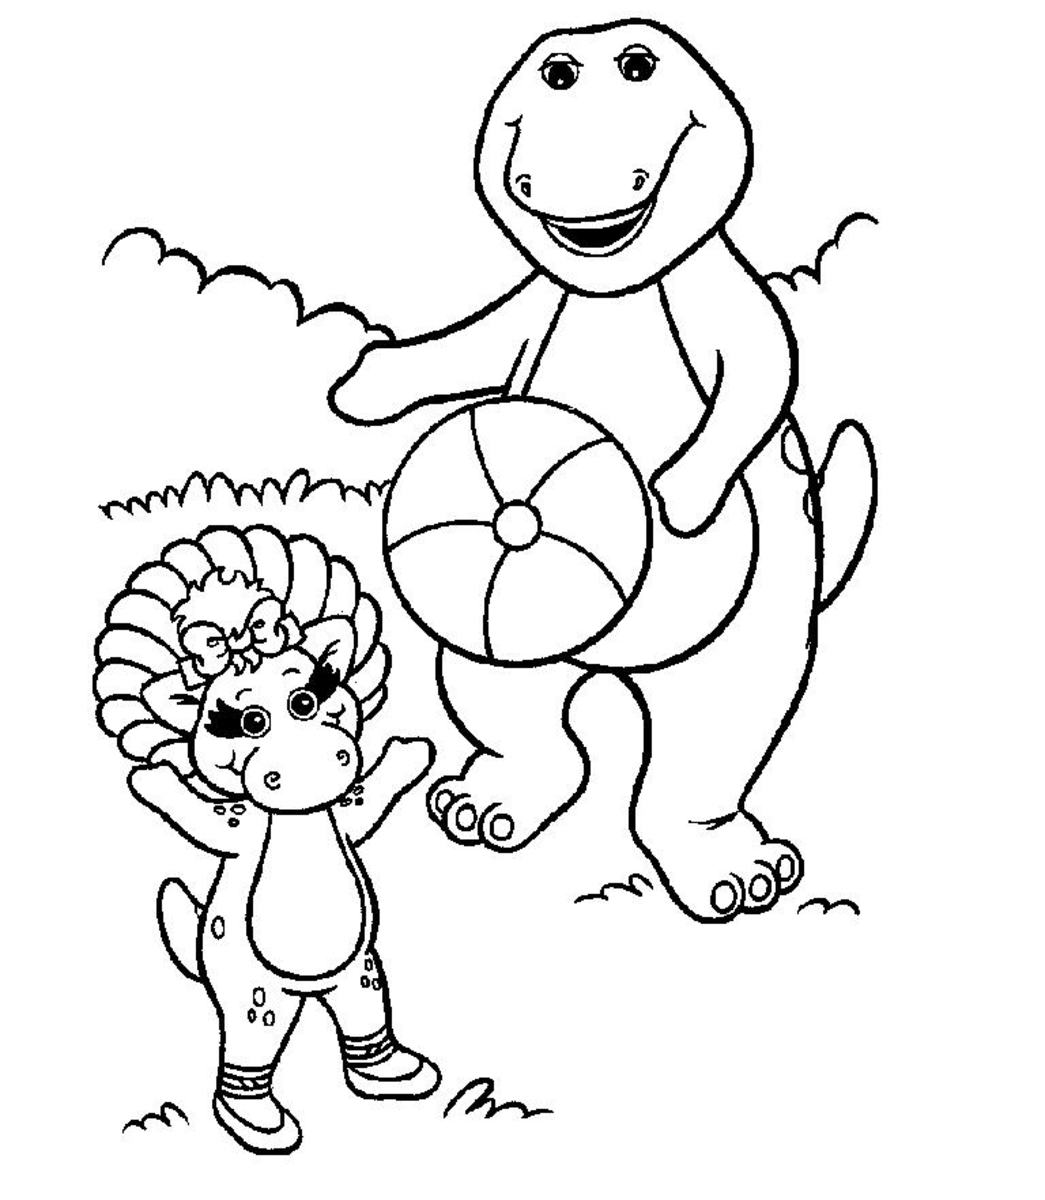 Barney and Baby bop coloring sheet